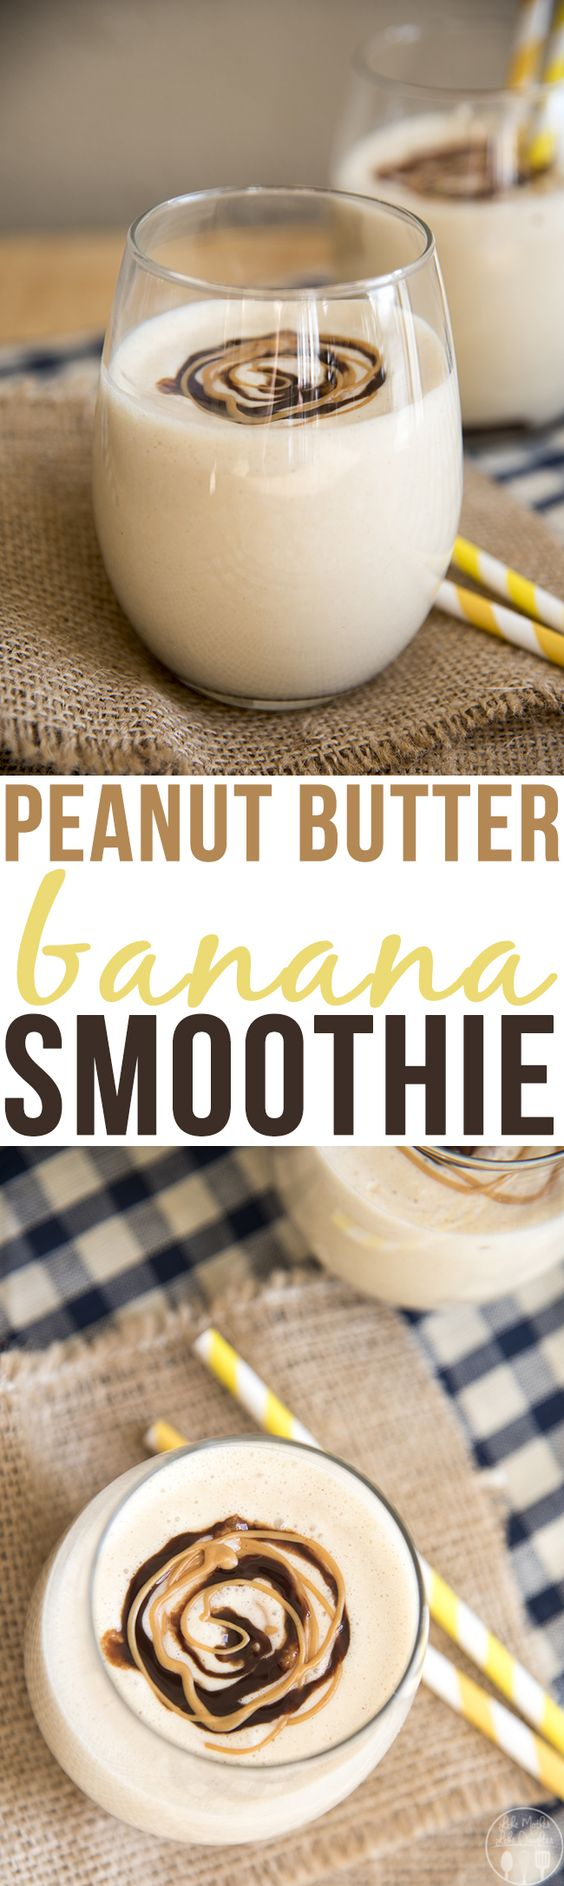 Peanut Butter Banana Smoothie Recipe via Like Mother, Like Daughter - This creamy peanut butter banana smoothie comes together in minutes for a quick breakfast or late night sweet.